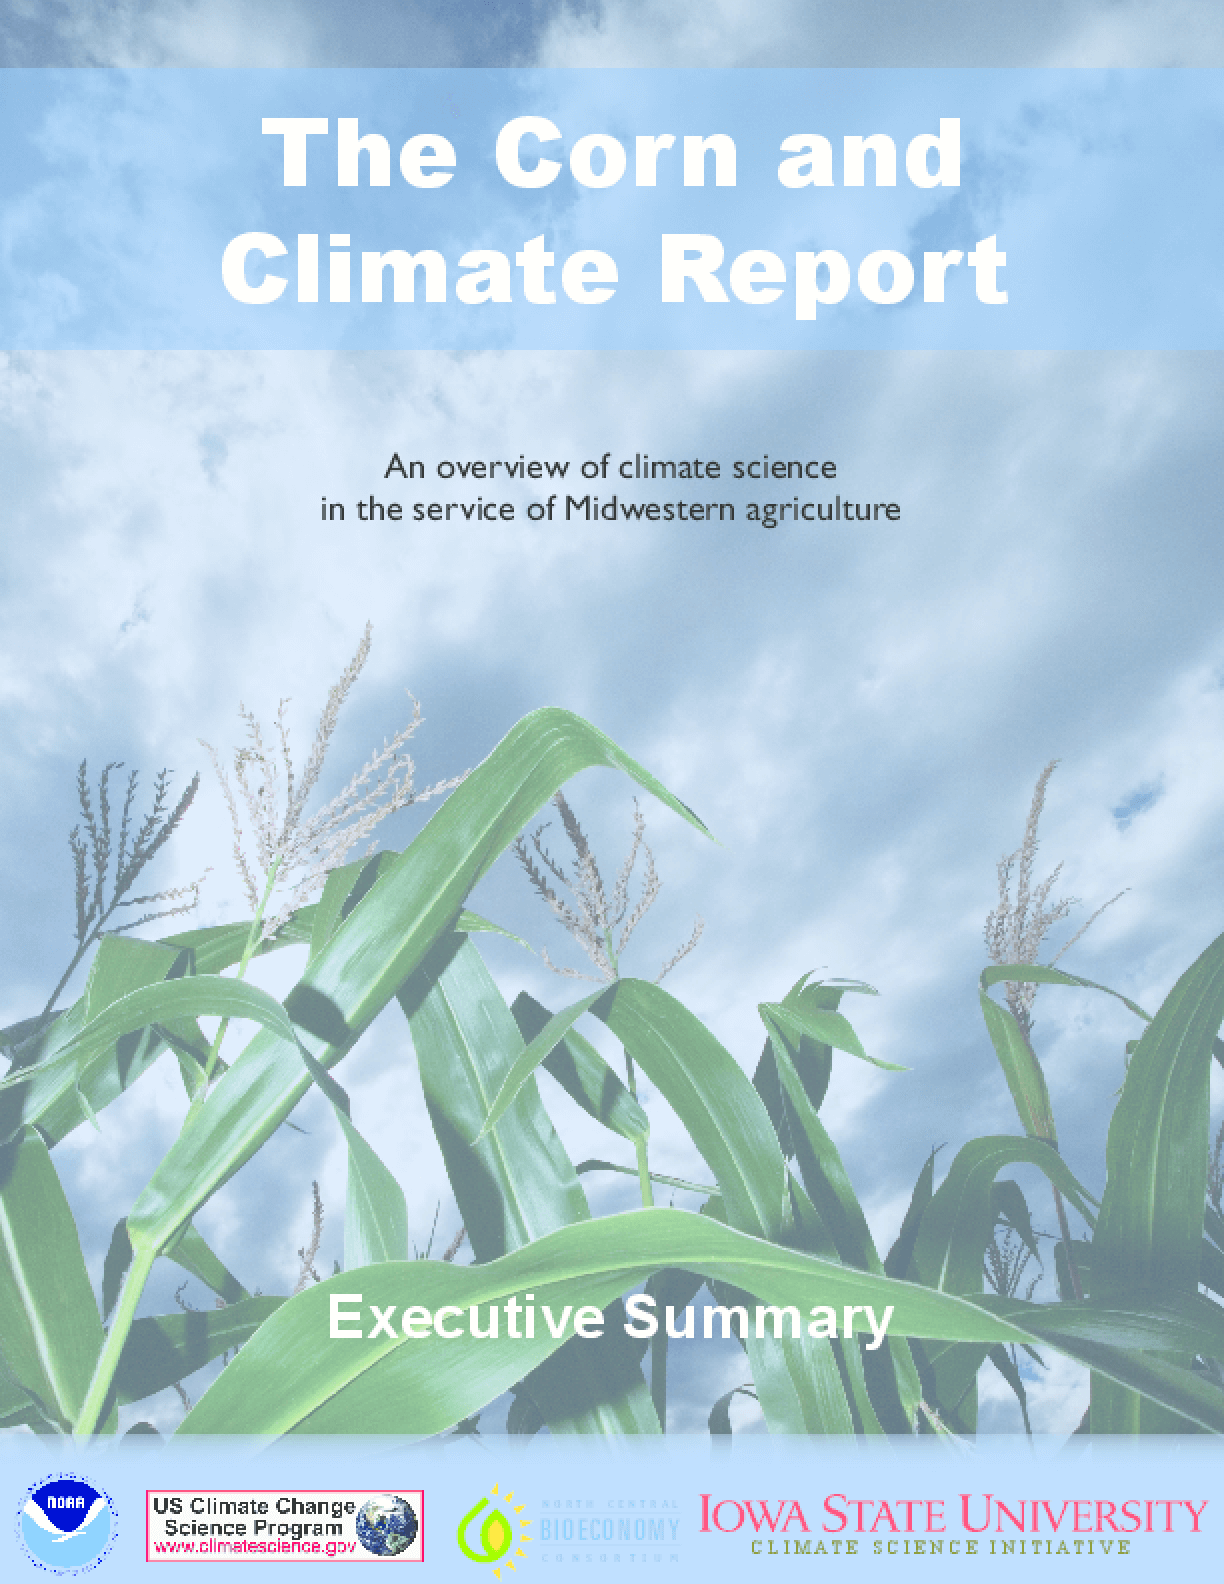 The Corn and Climate Report